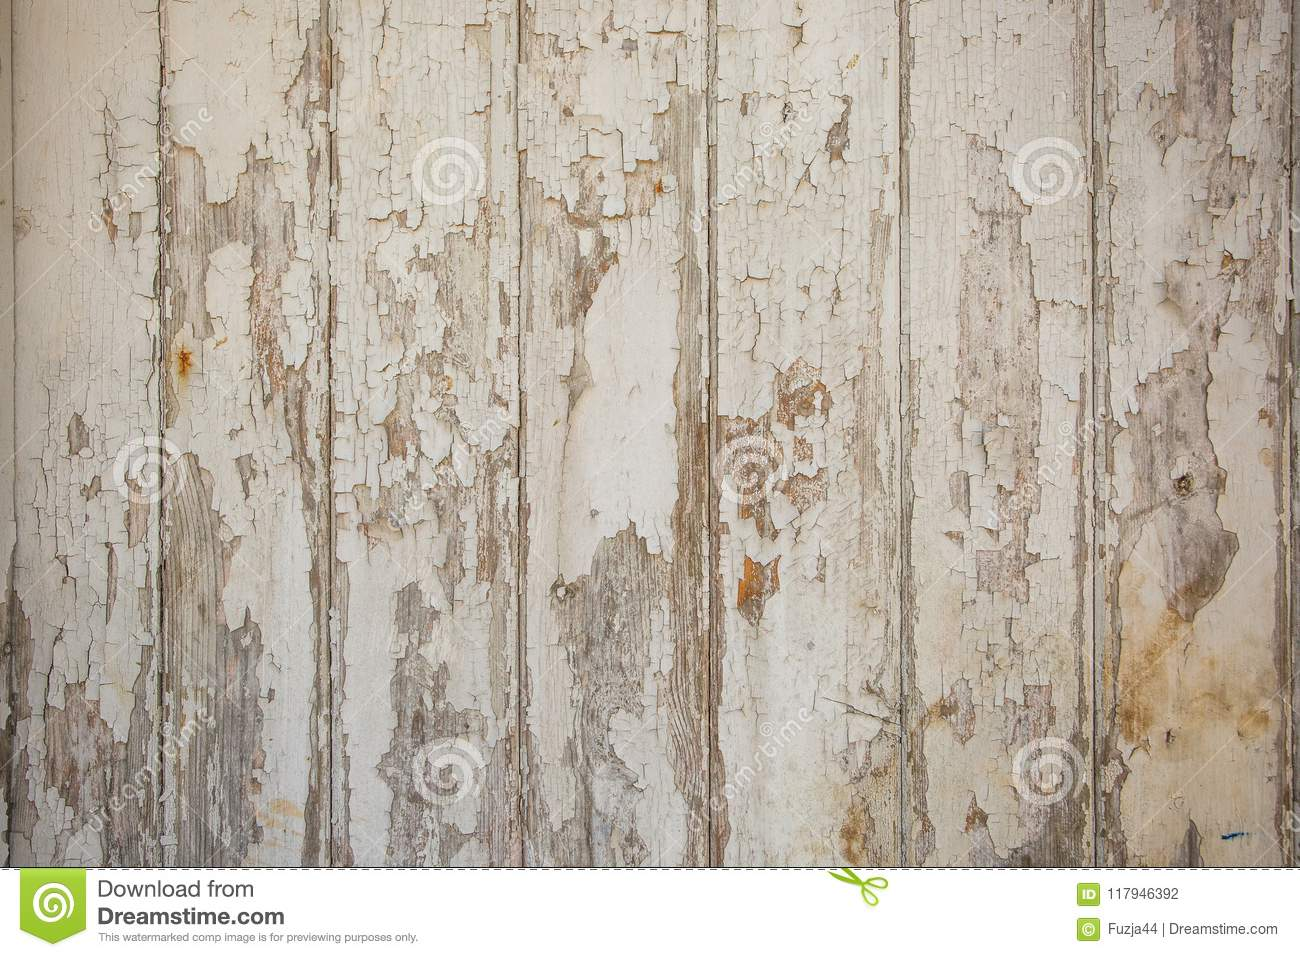 White/grey wood texture background with natural patterns